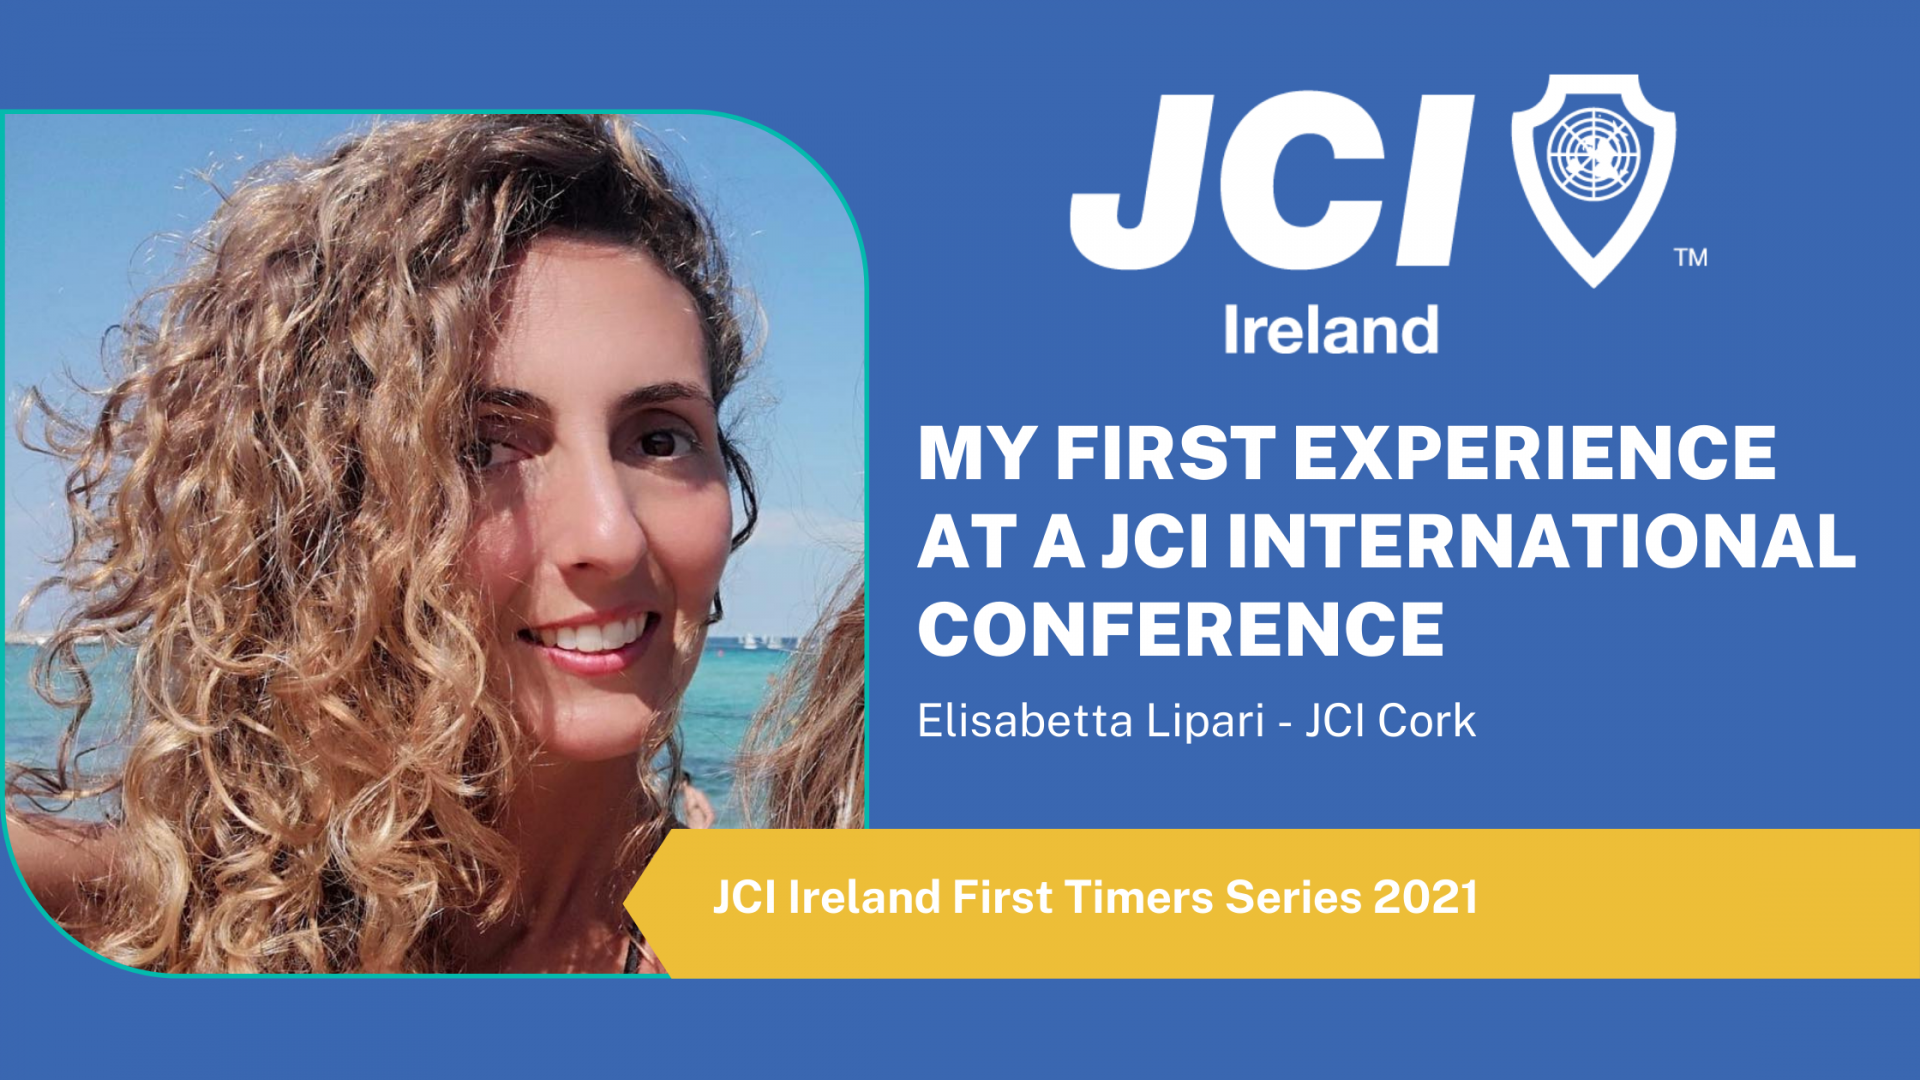 My first experience at a JCI international conference